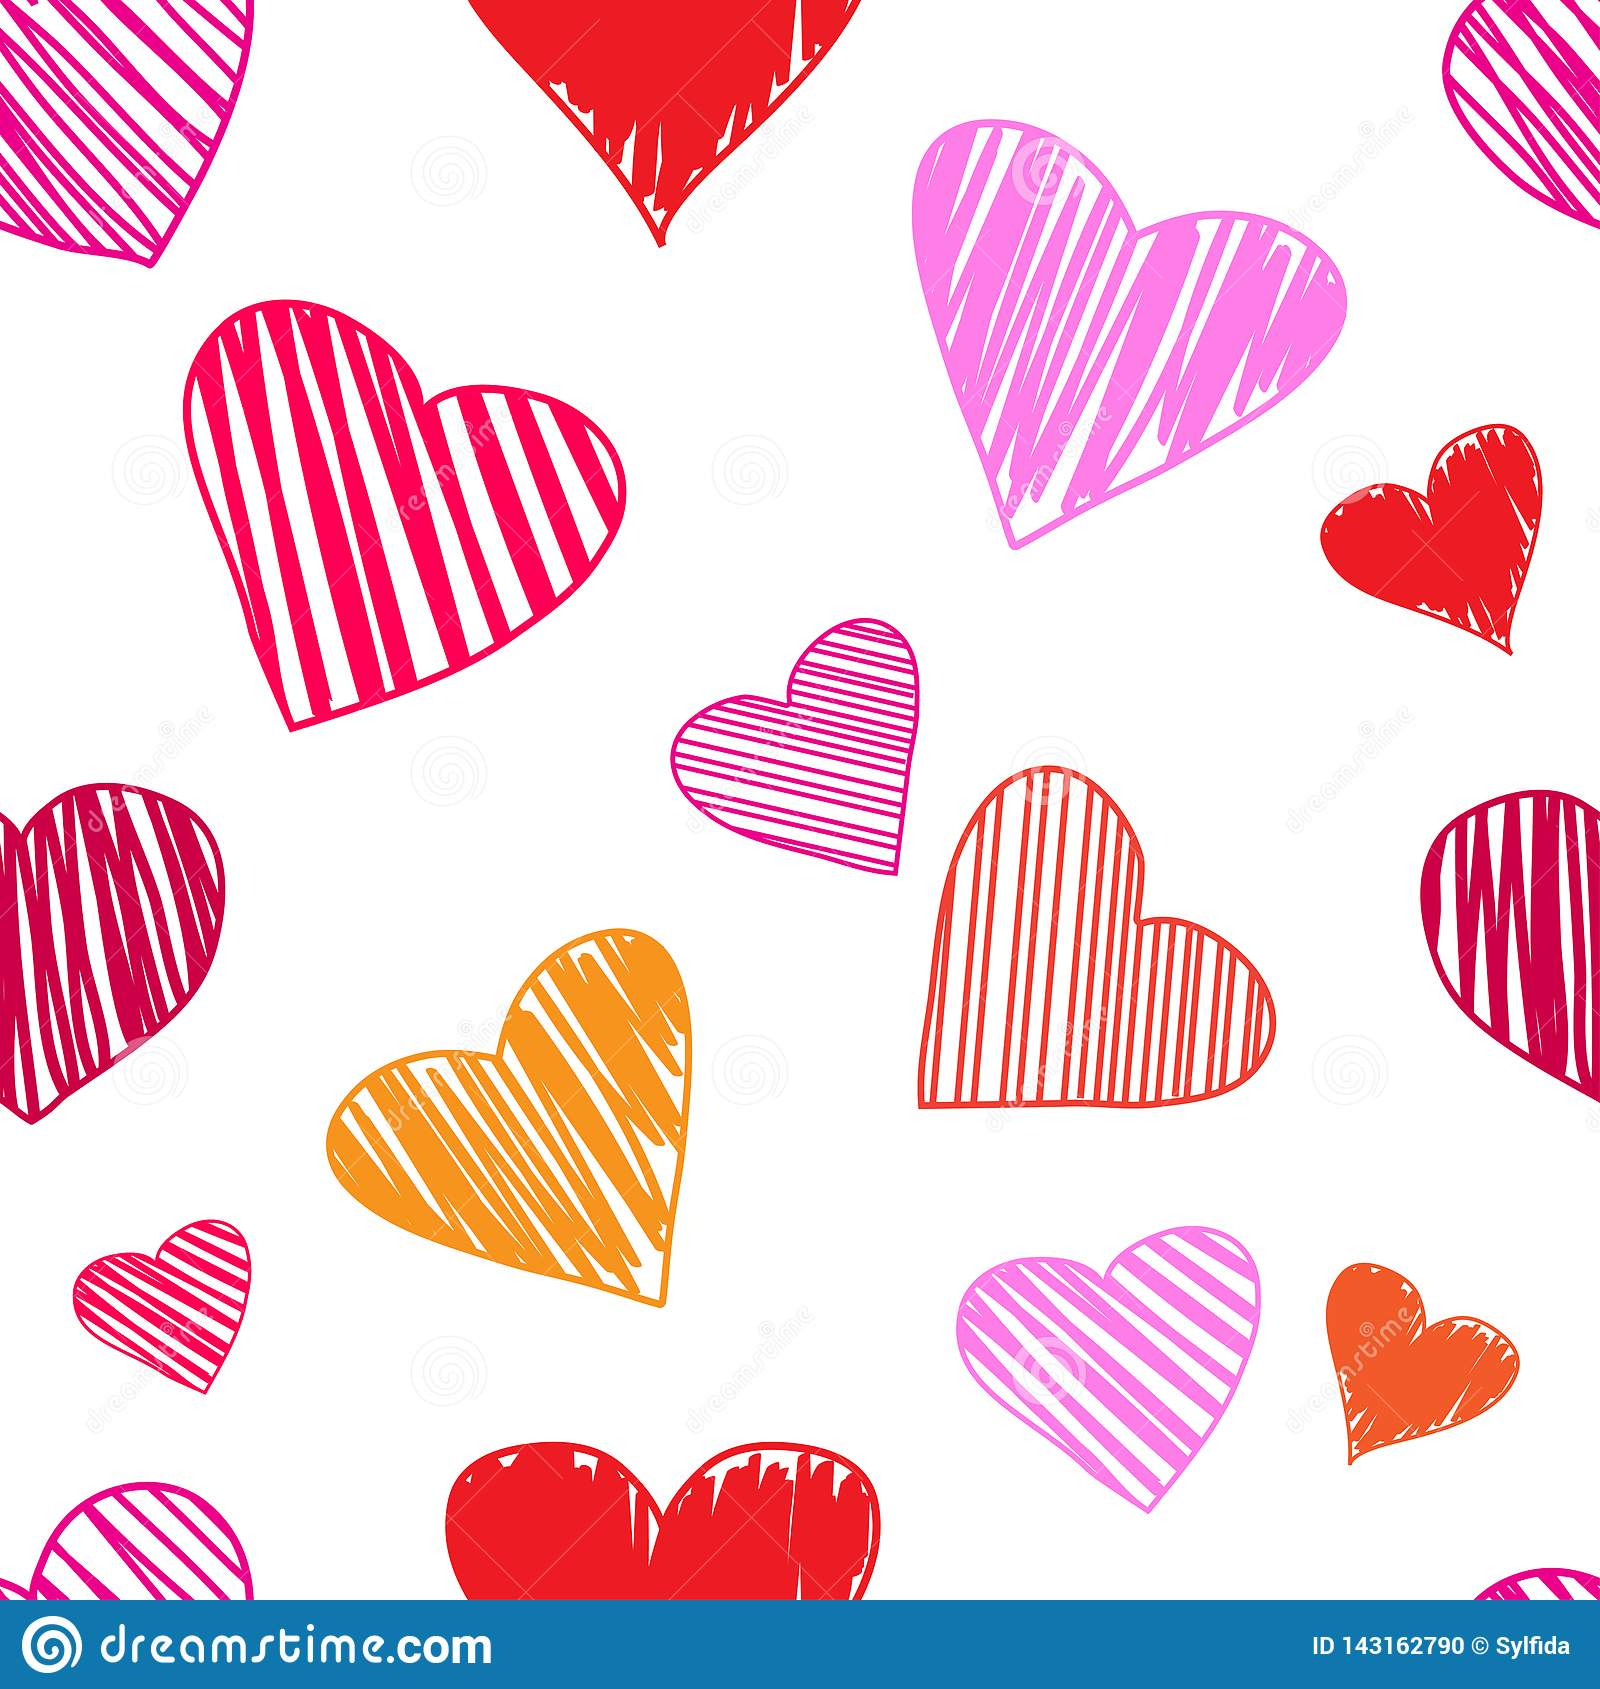 Seamless pattern with colorful hearts on white background. Vector illustration